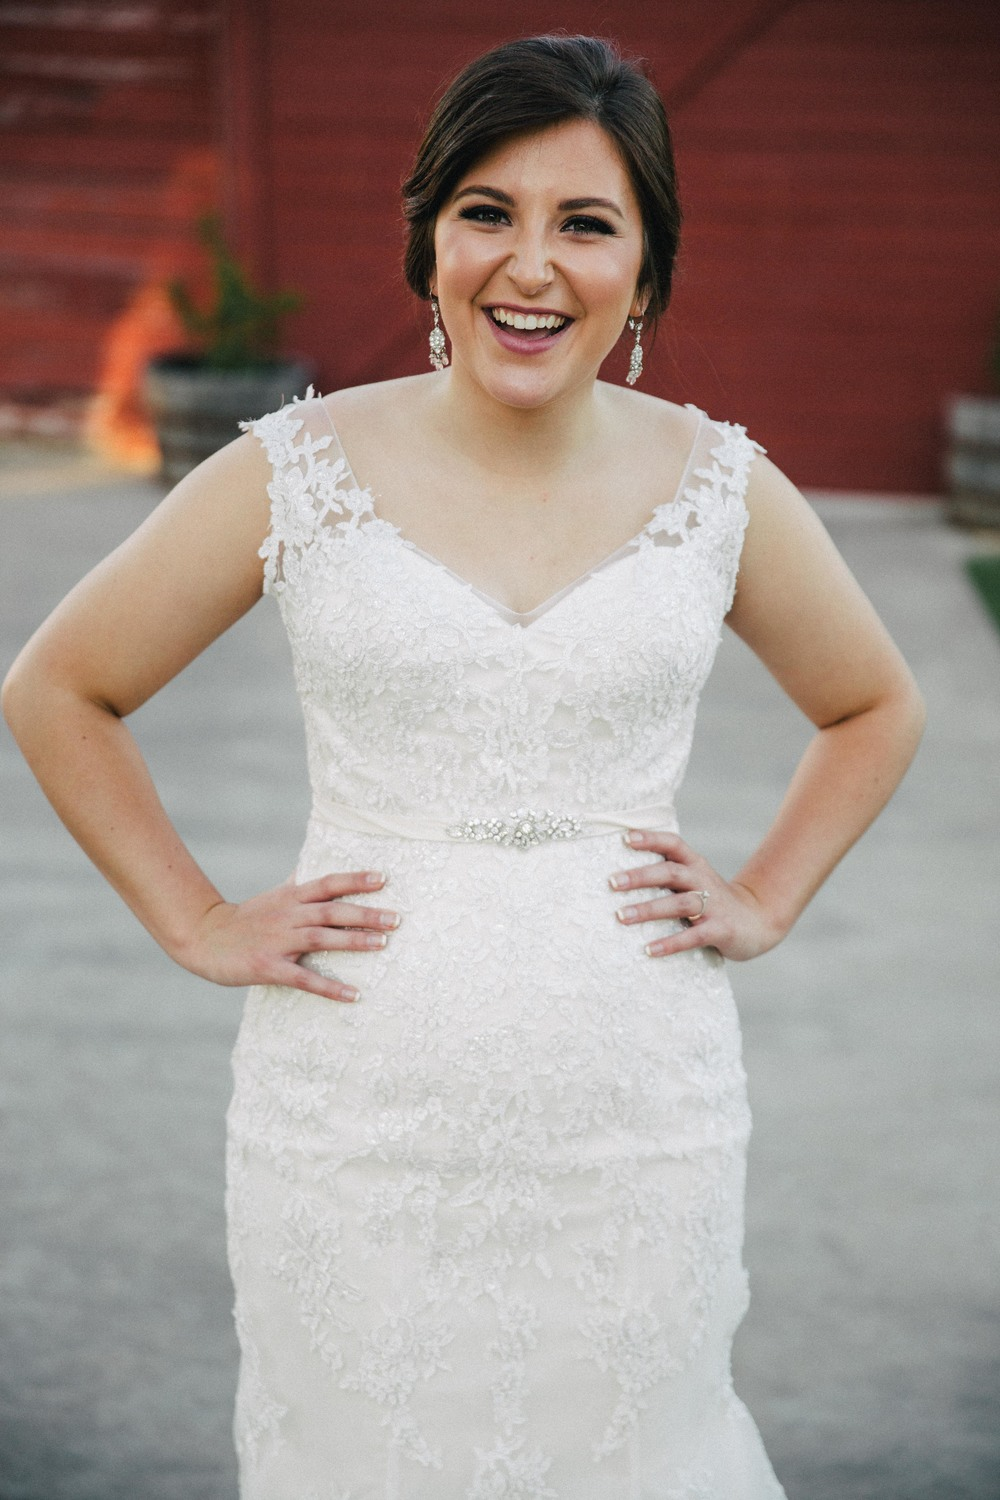 Laughing Bridal Portrait